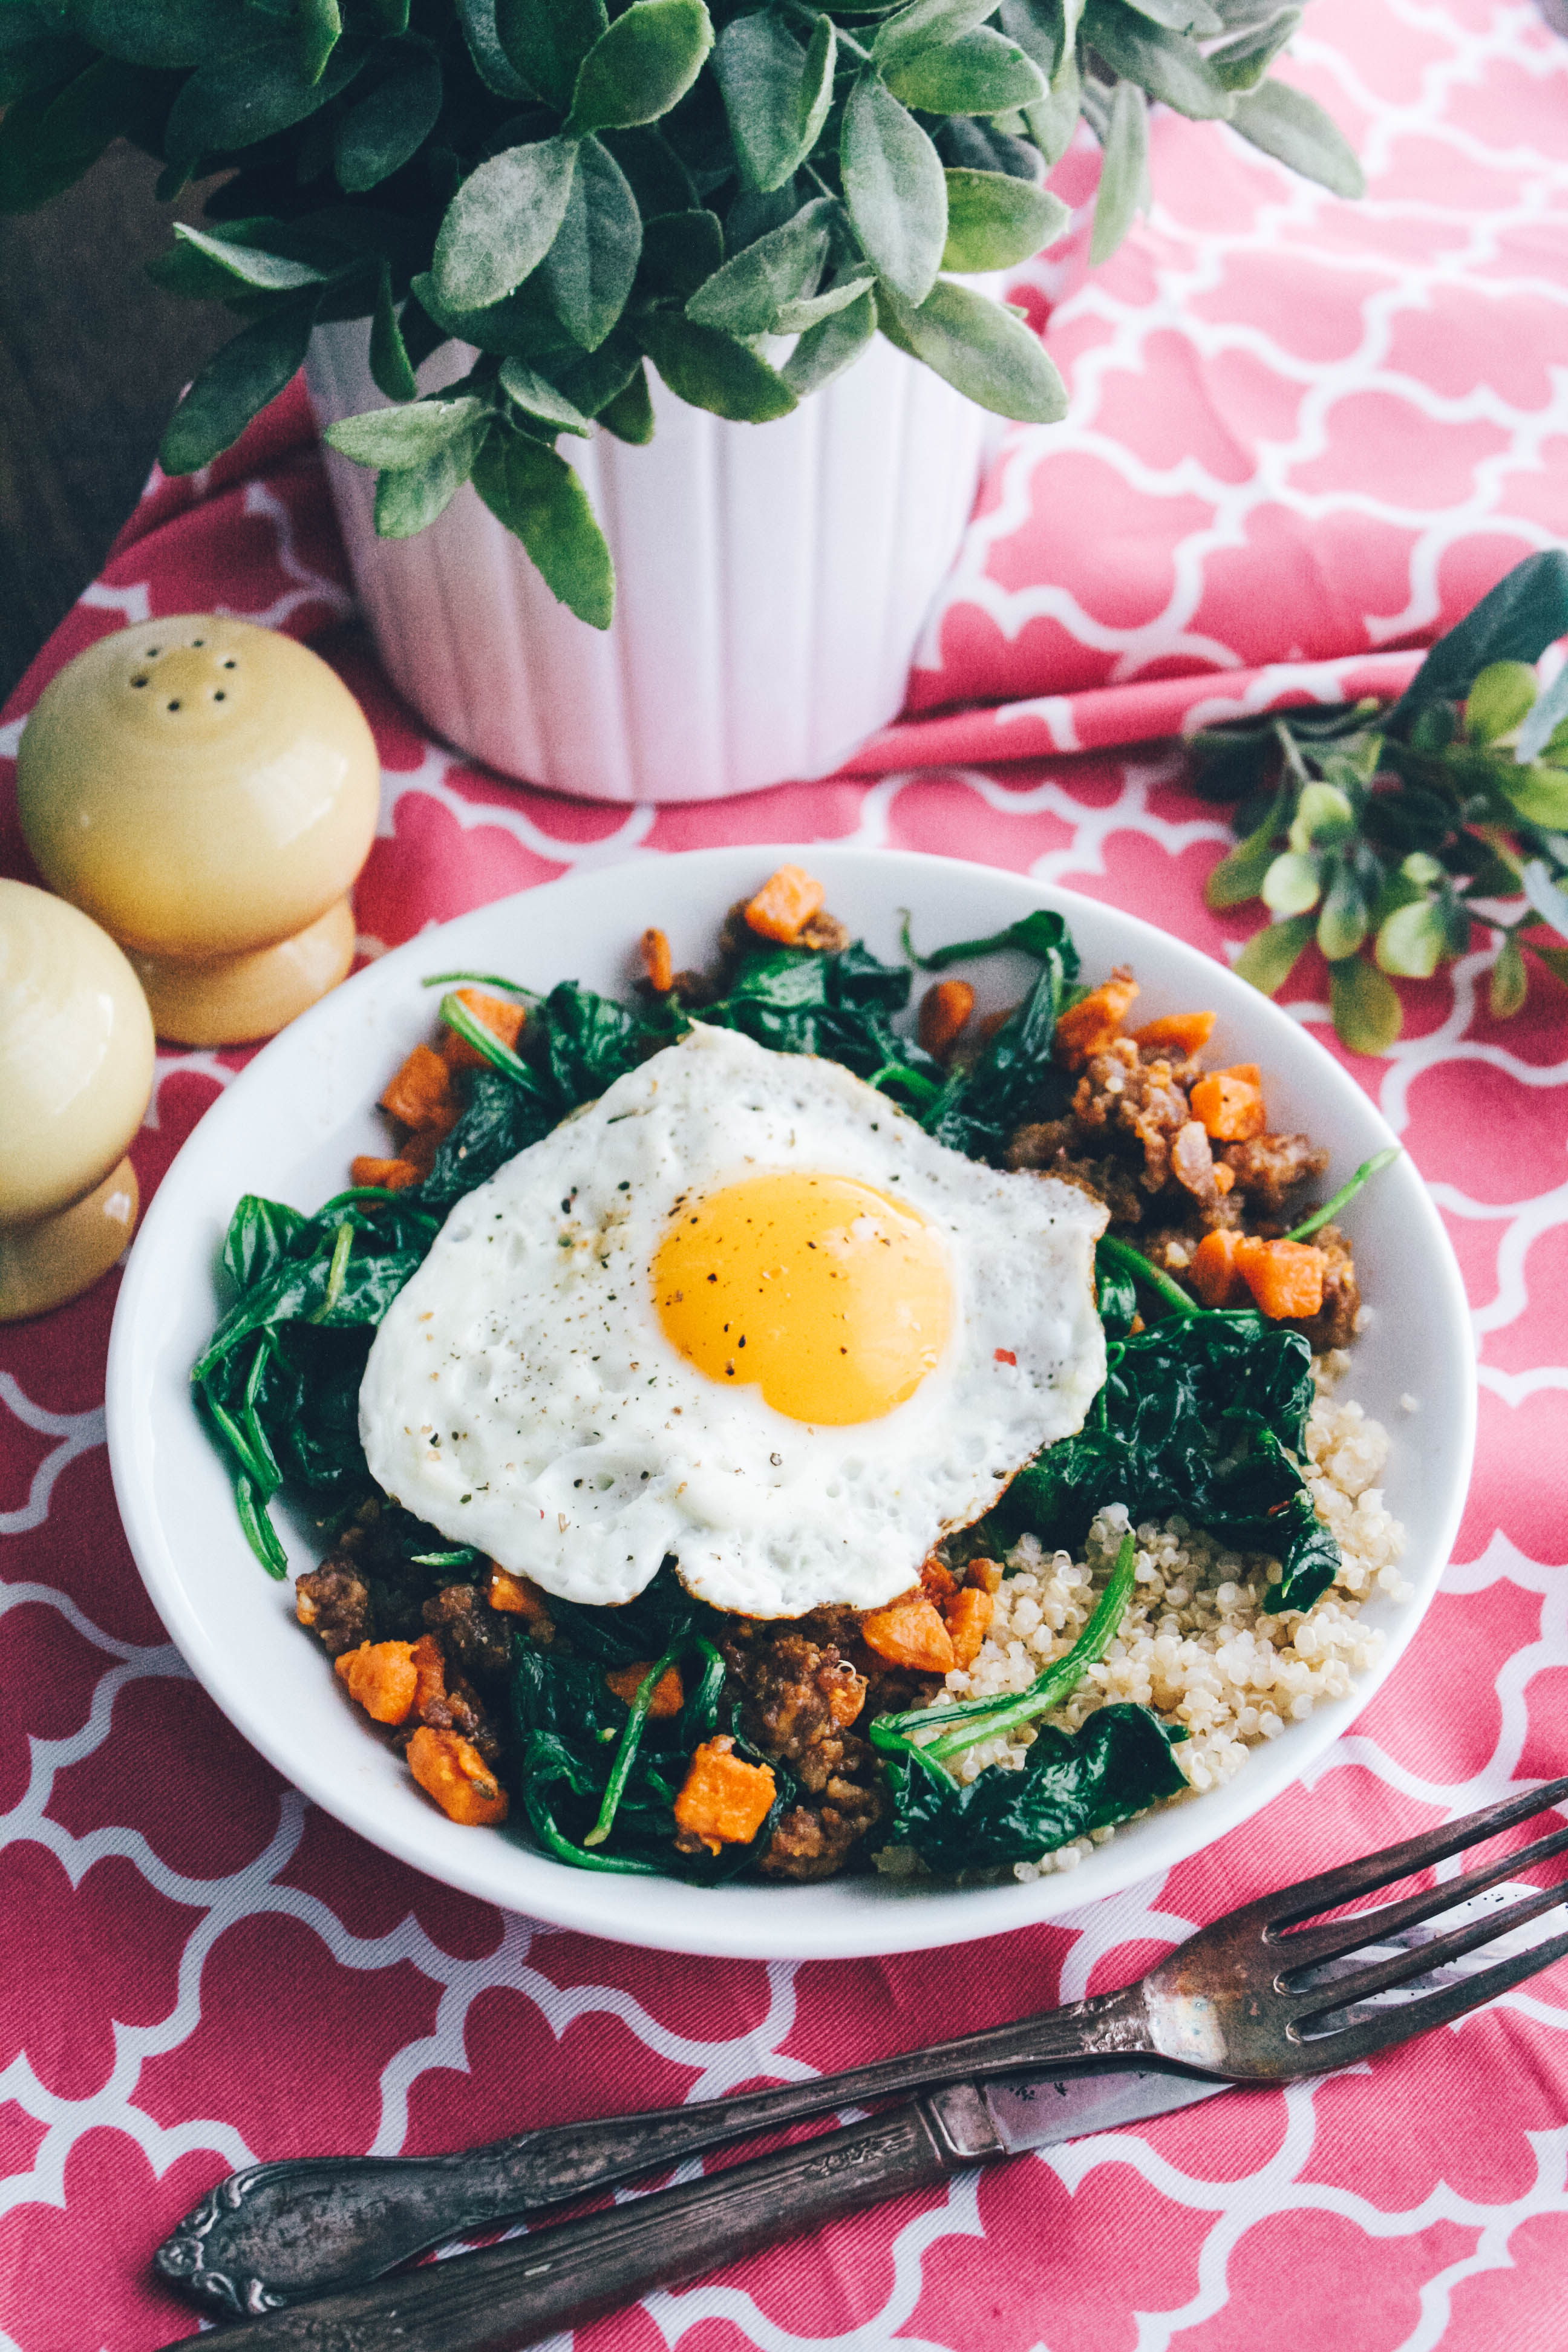 Sausage, Sweet Potato & Spinach Quinoa Bowls with Egg are a delightful dish for breakfast! Sausage, Sweet Potato & Spinach Quinoa Bowls with Egg are so tasty and easy to make, too.